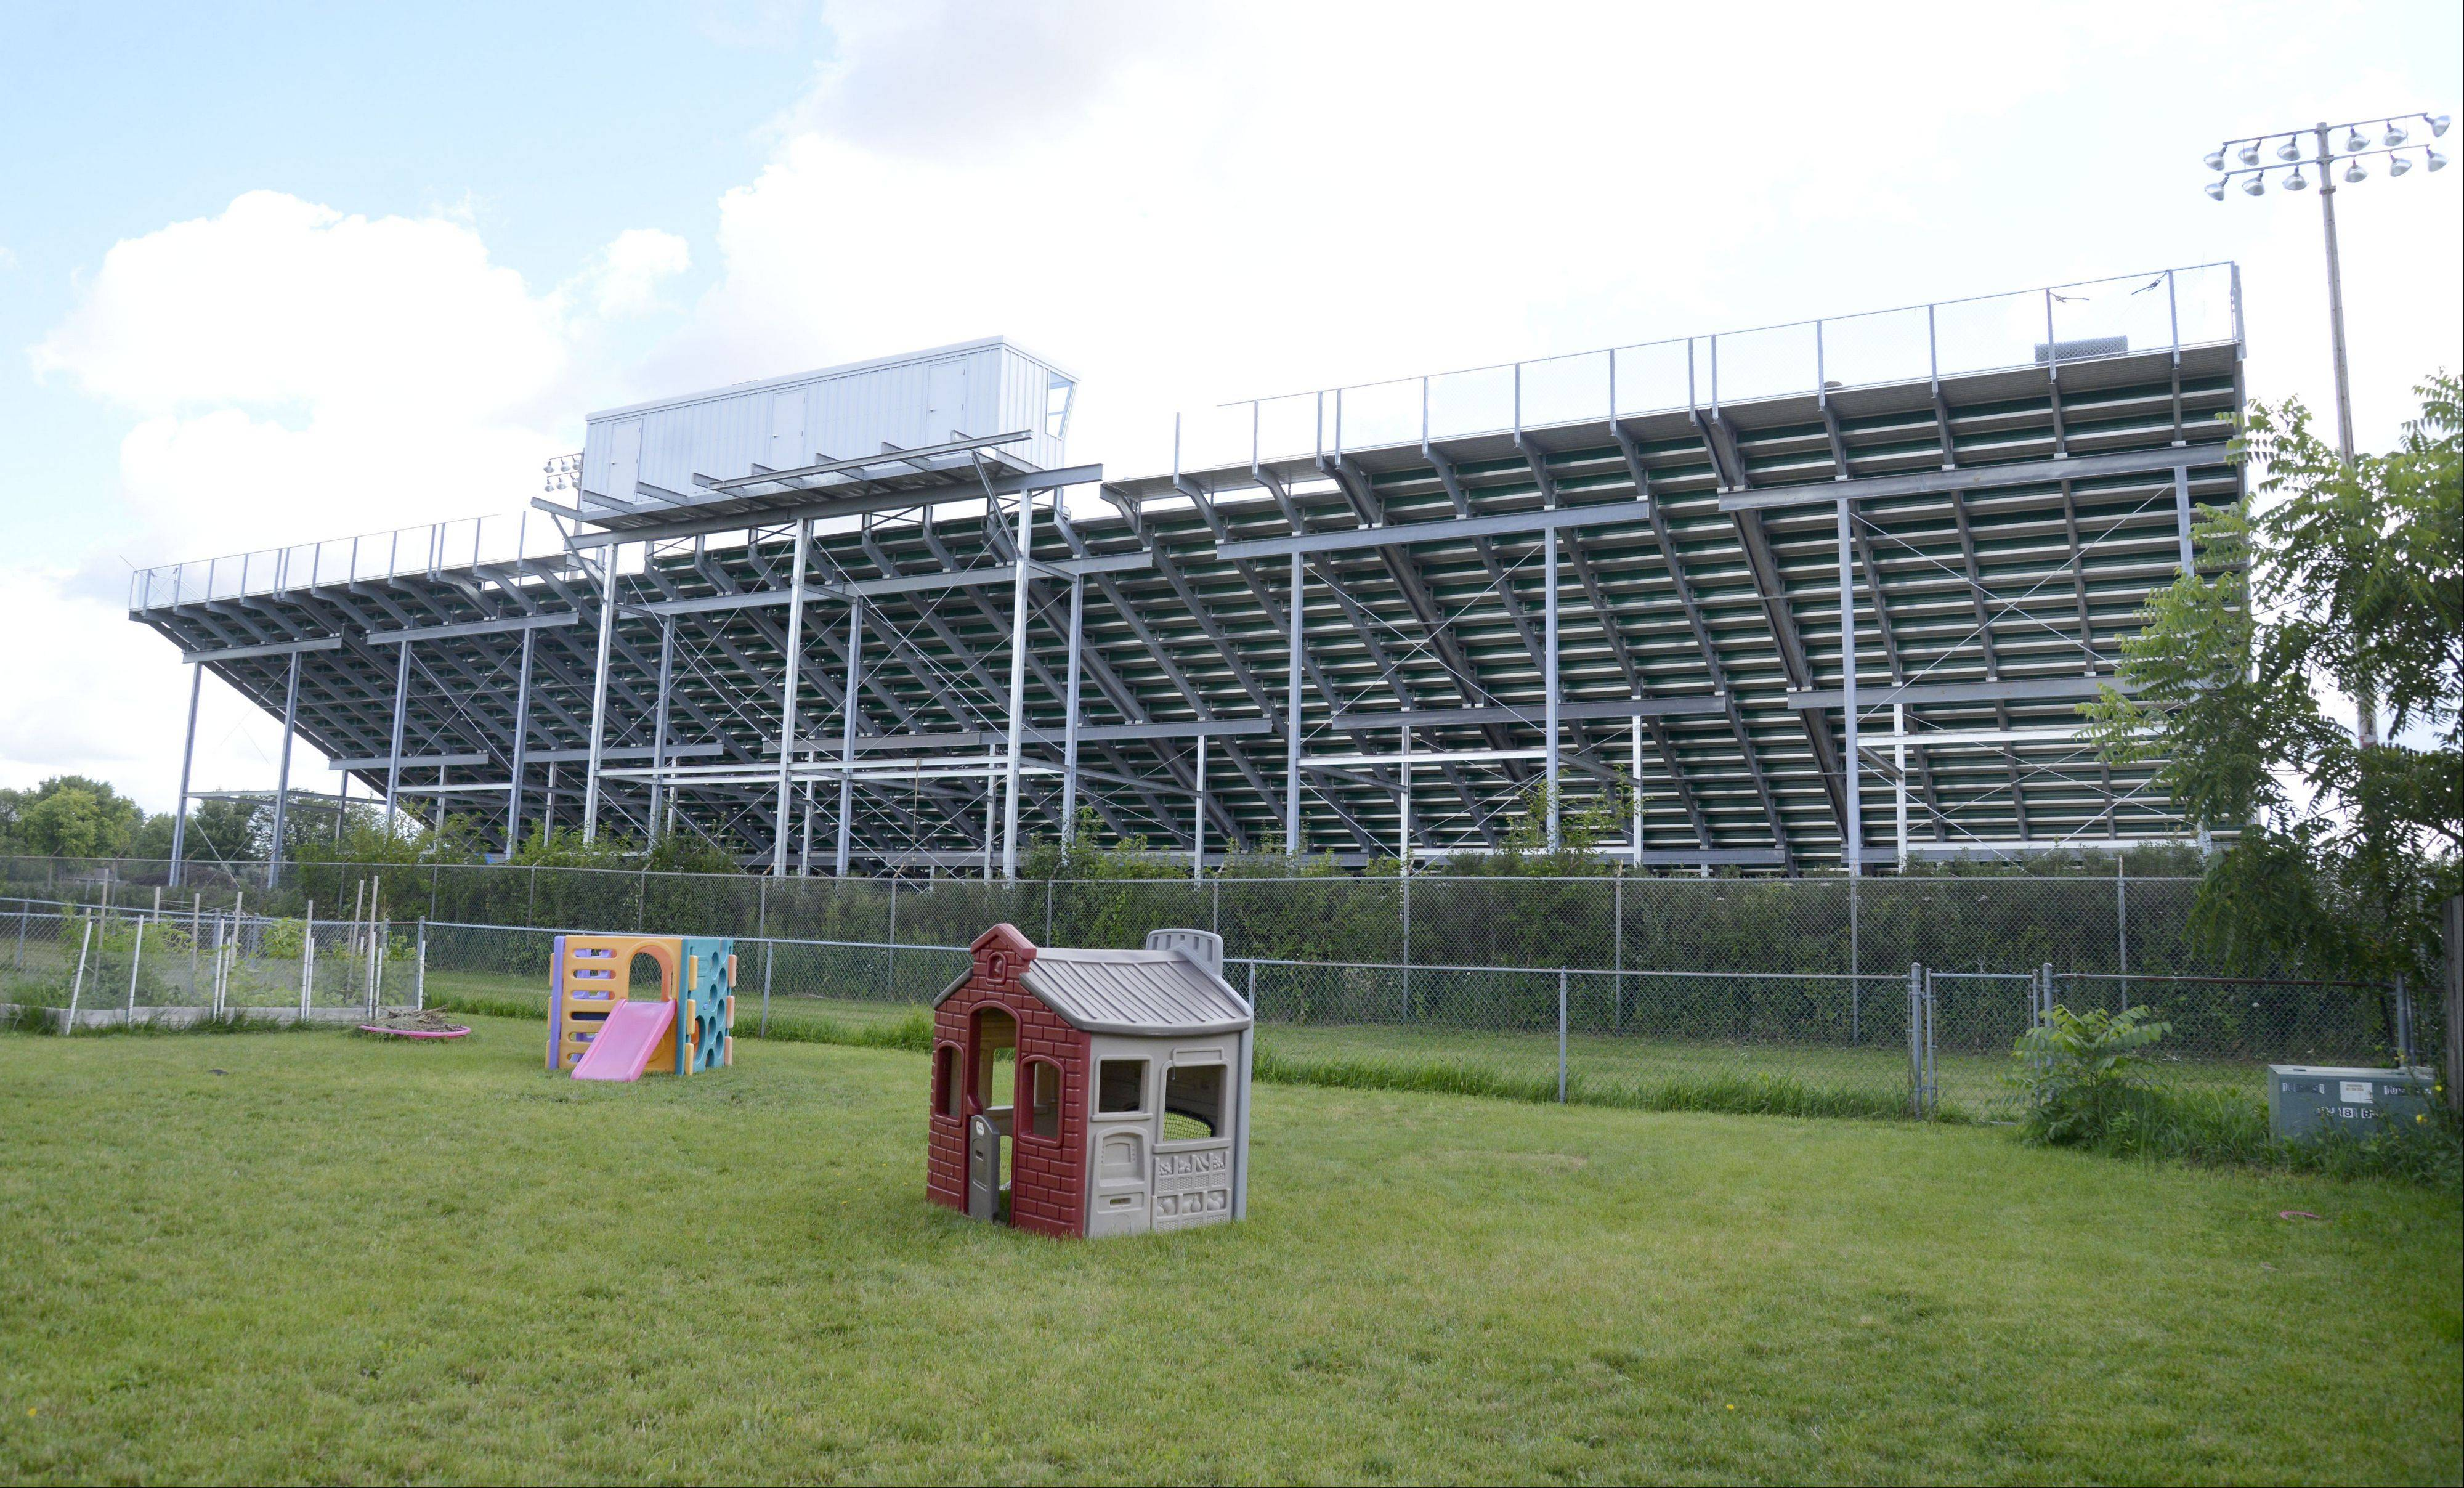 State's Attorney Bianchi suing Crystal Lake schools over bleachers